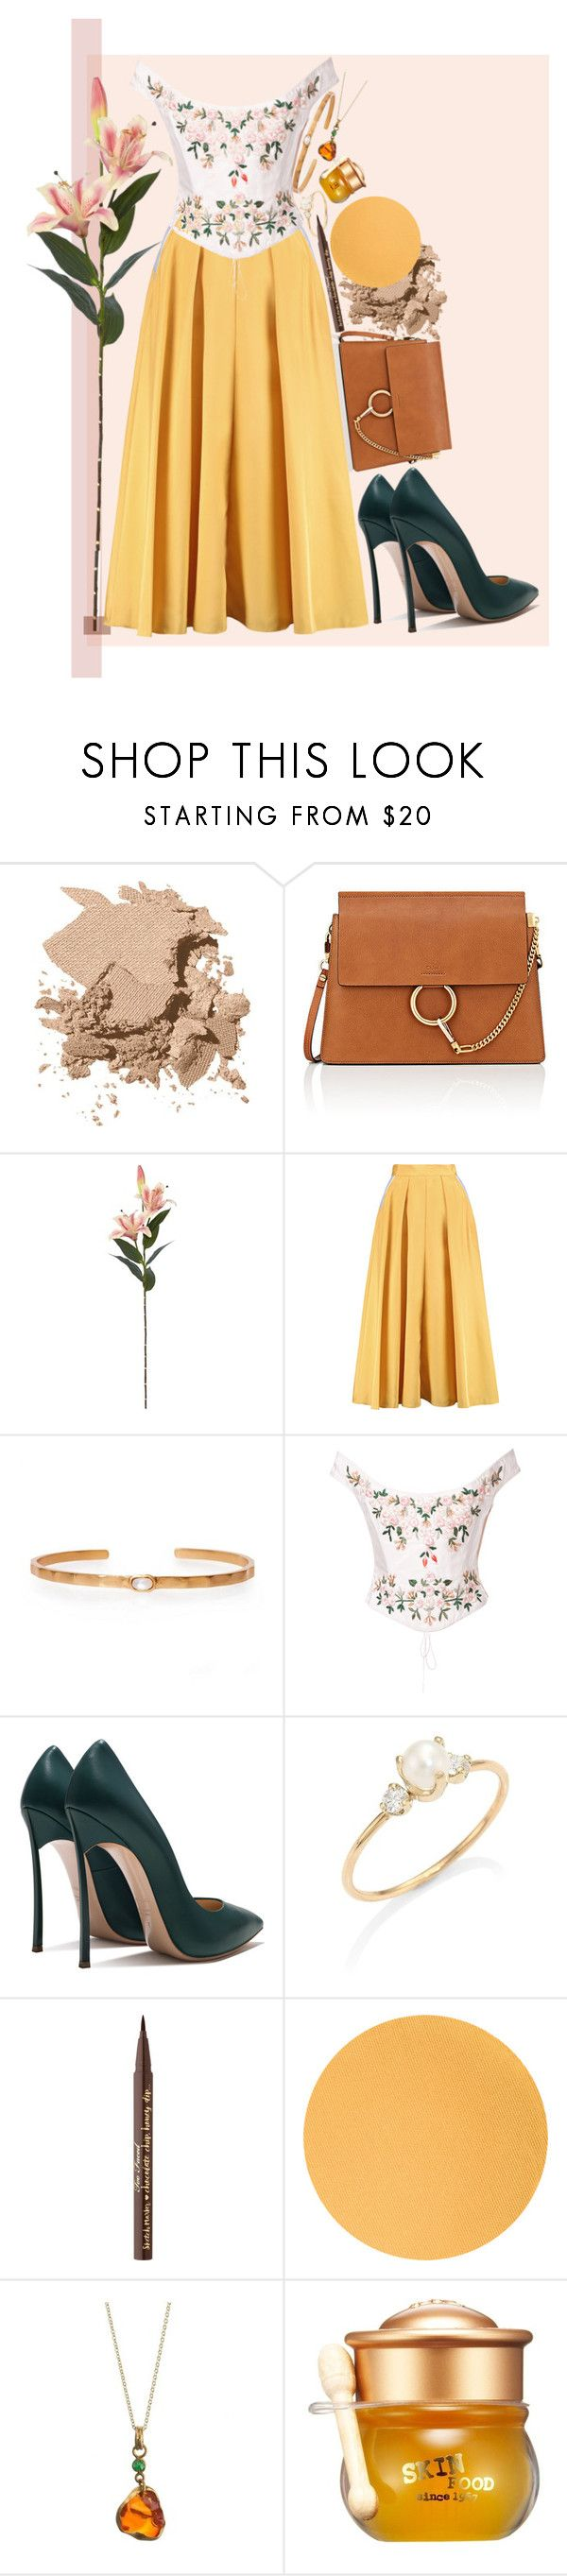 """""""Page Idea 19"""" by muse-of-the-muses on Polyvore featuring Bobbi Brown Cosmetics, Chloé, Roksanda, Christina Greene, Eavis & Brown, Zoë Chicco, Too Faced Cosmetics and Skinfood"""